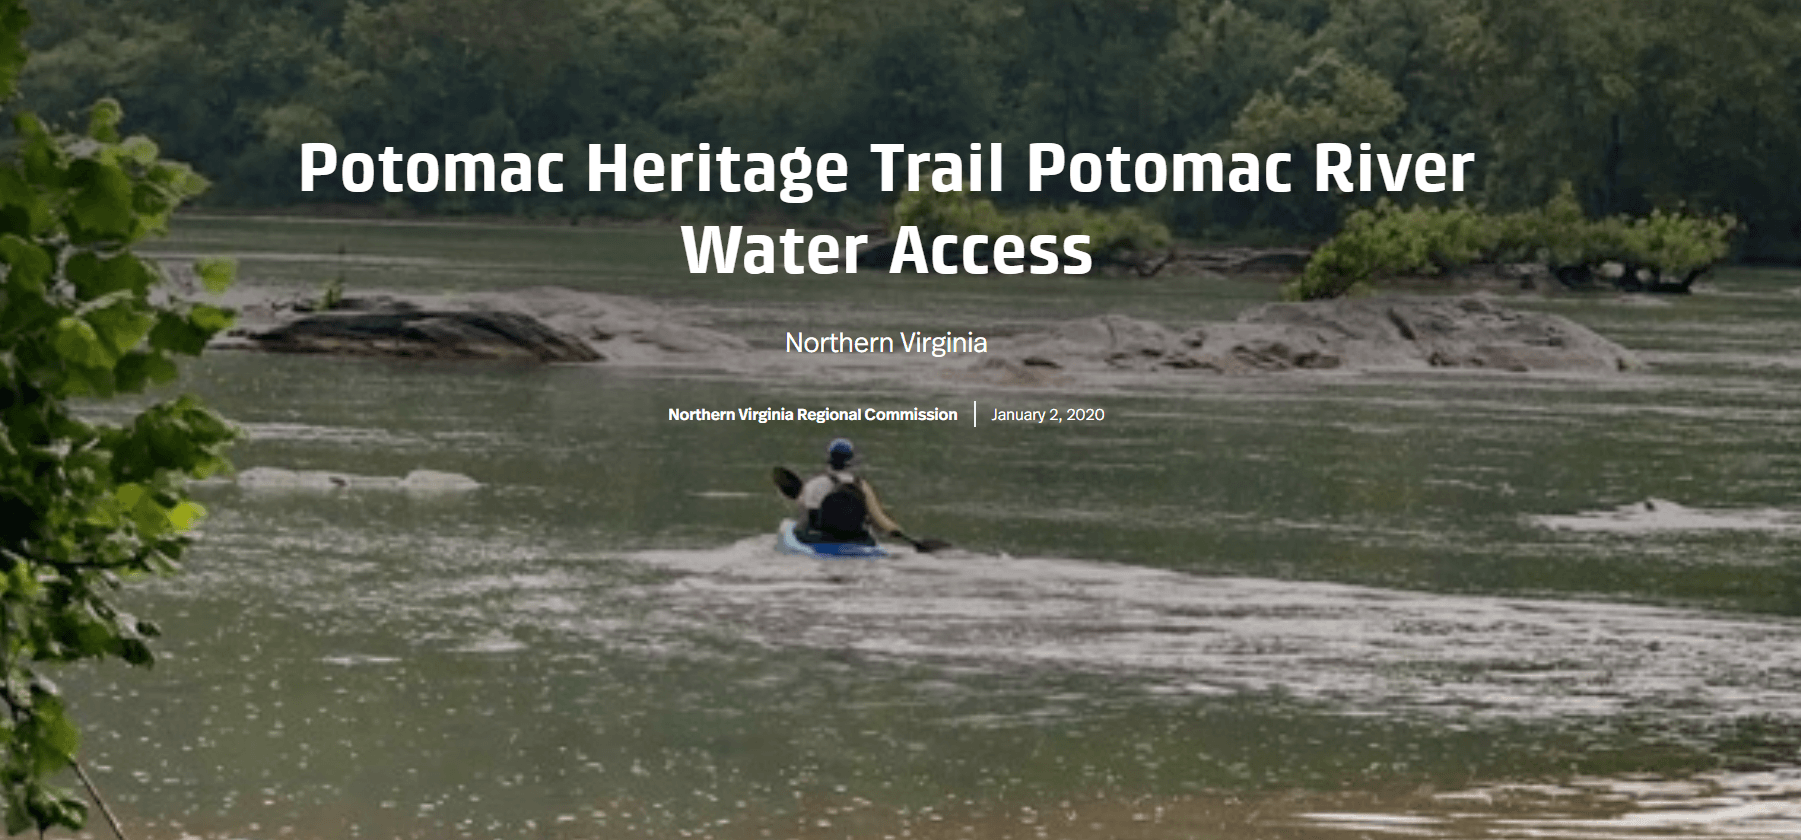 Water Access Story Map Cover Image Opens in new window